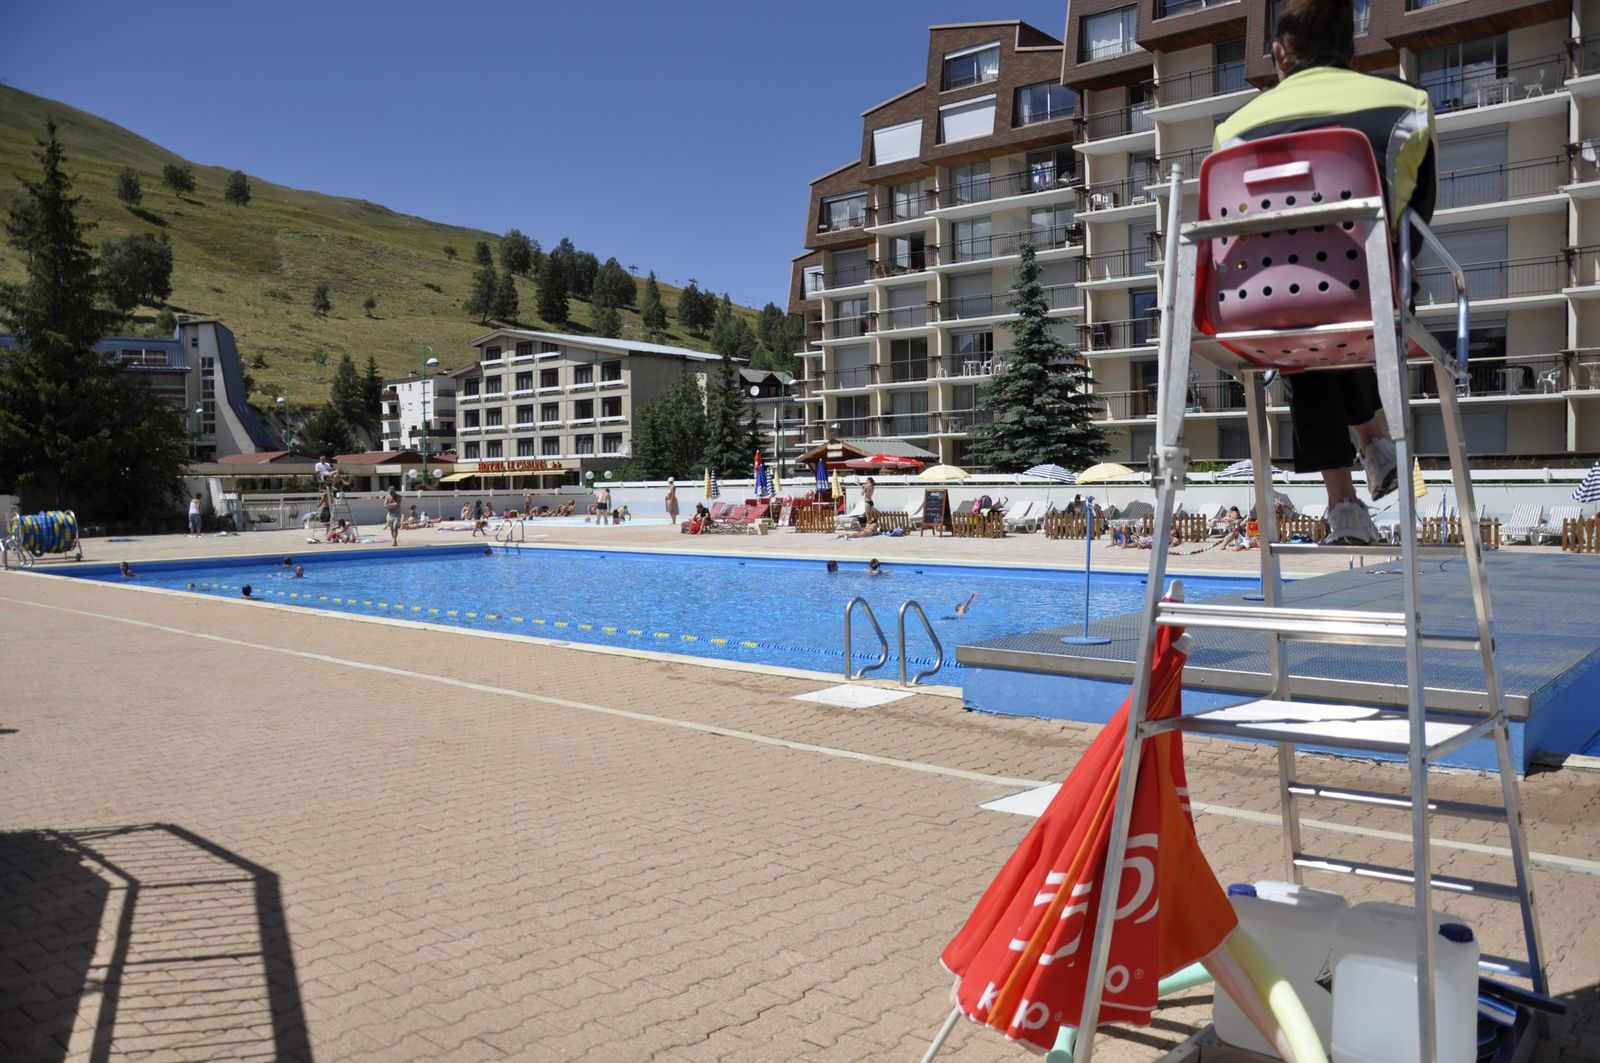 Album station ete le sappey les 2 alpes for Piscine les 2 alpes